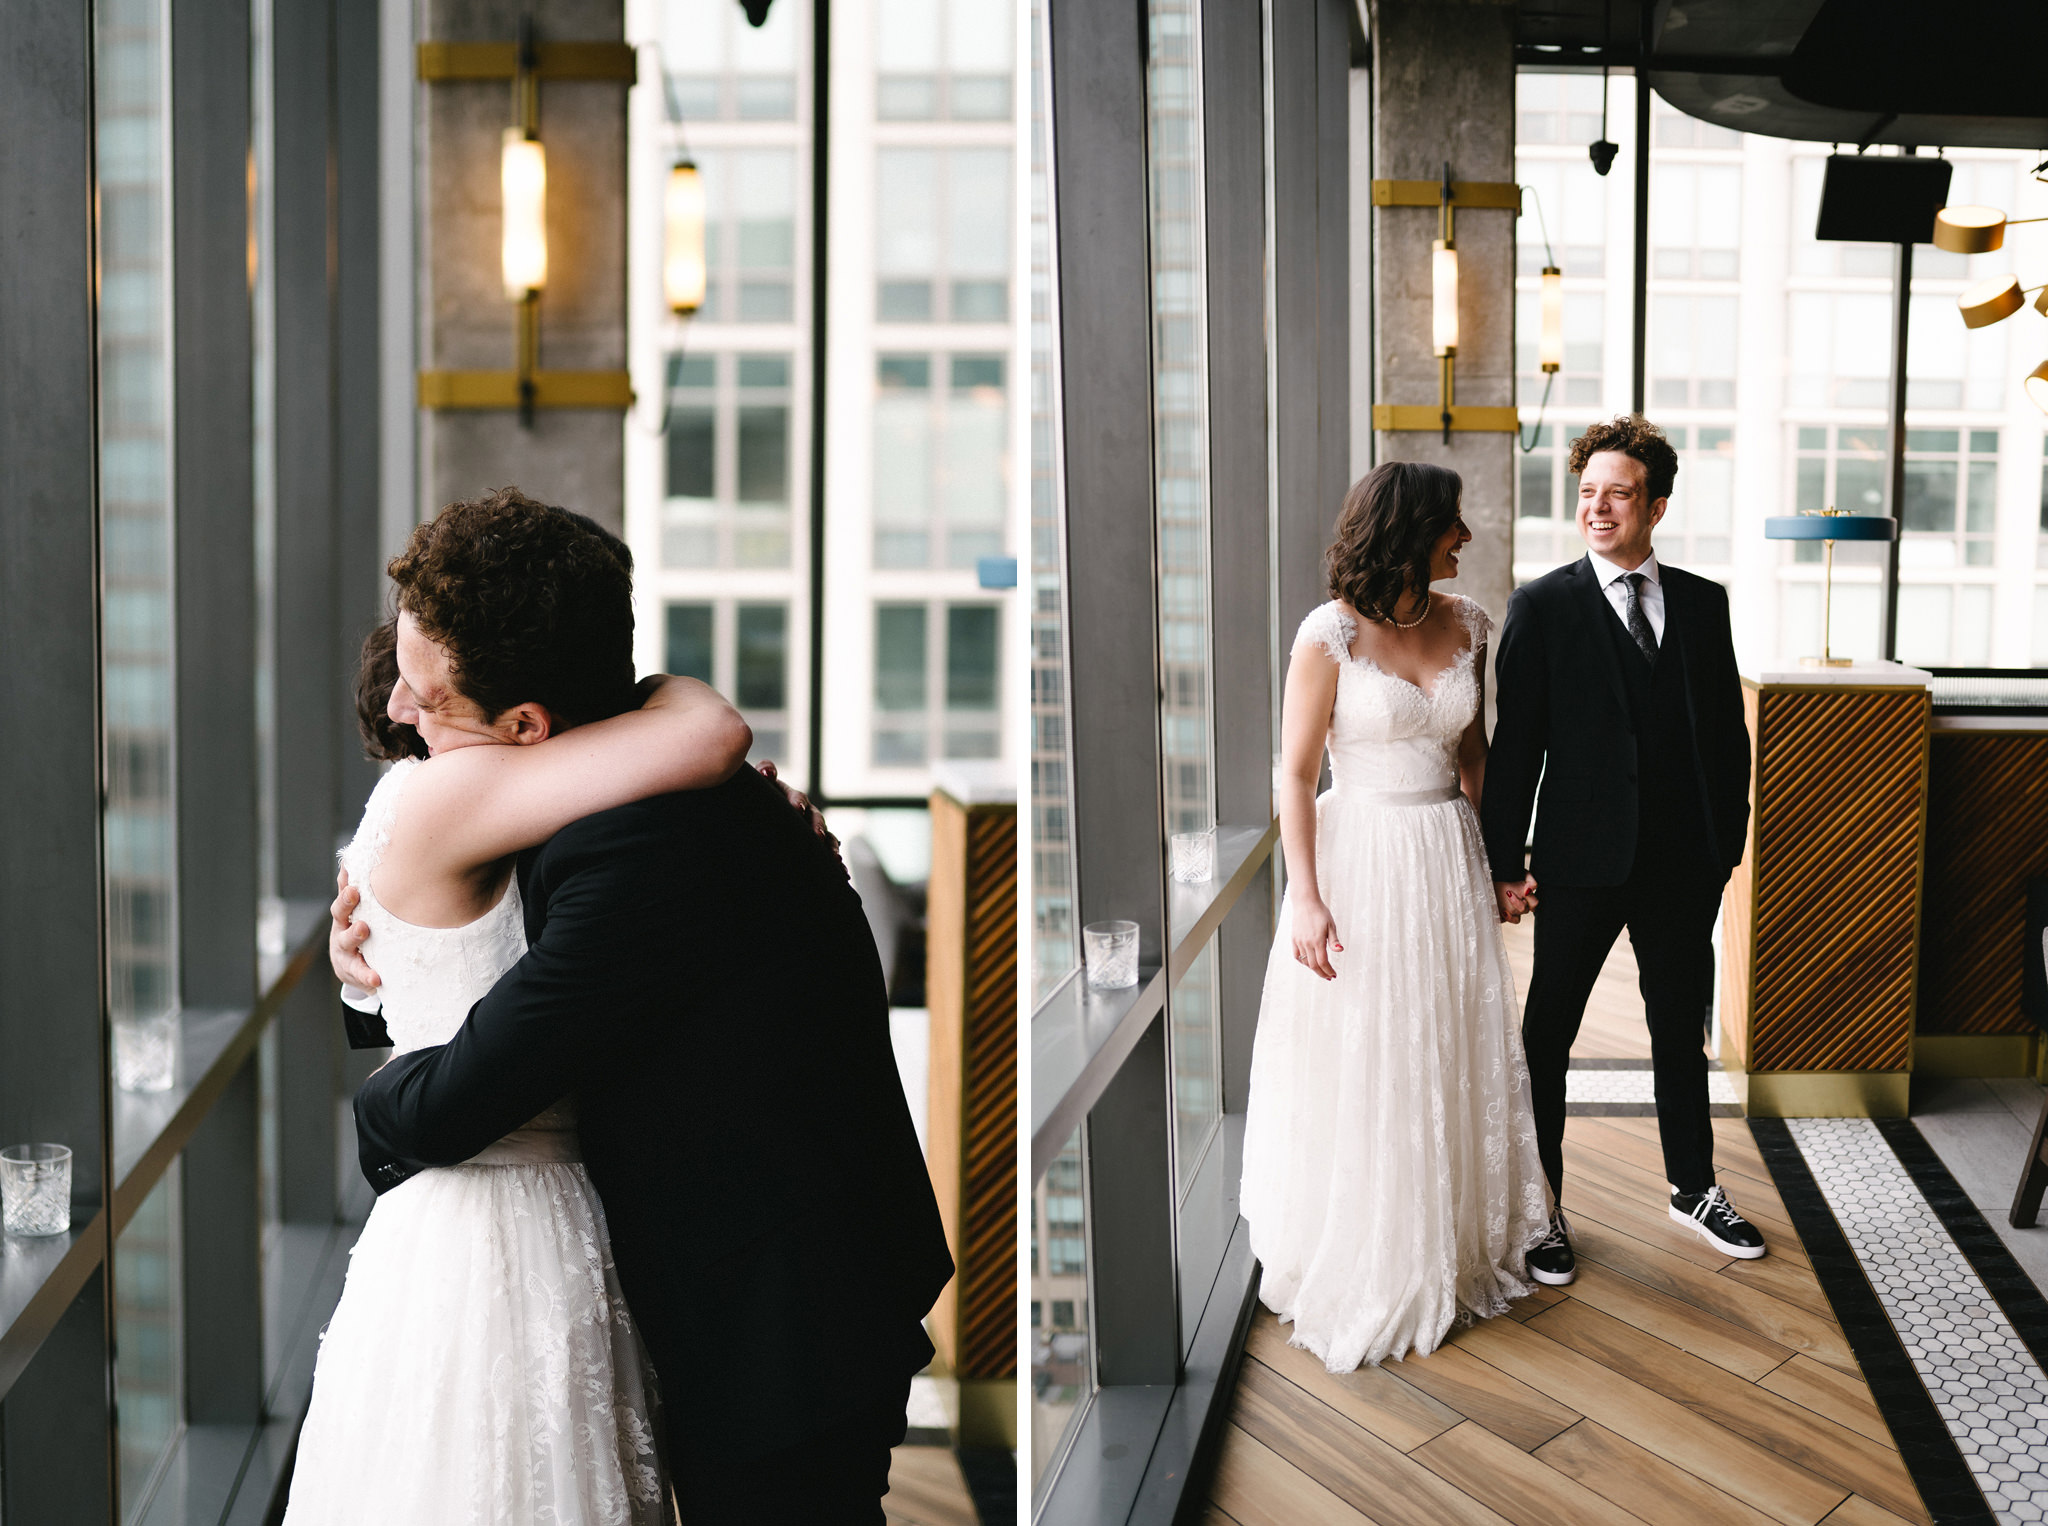 075-rempel-photography-chicago-wedding-inspiration-west-loop-fulton-market-caitlin-max-loft-lucia-venue-lindsey-marino-city-bbq-dana-hotel-and-spa.jpg